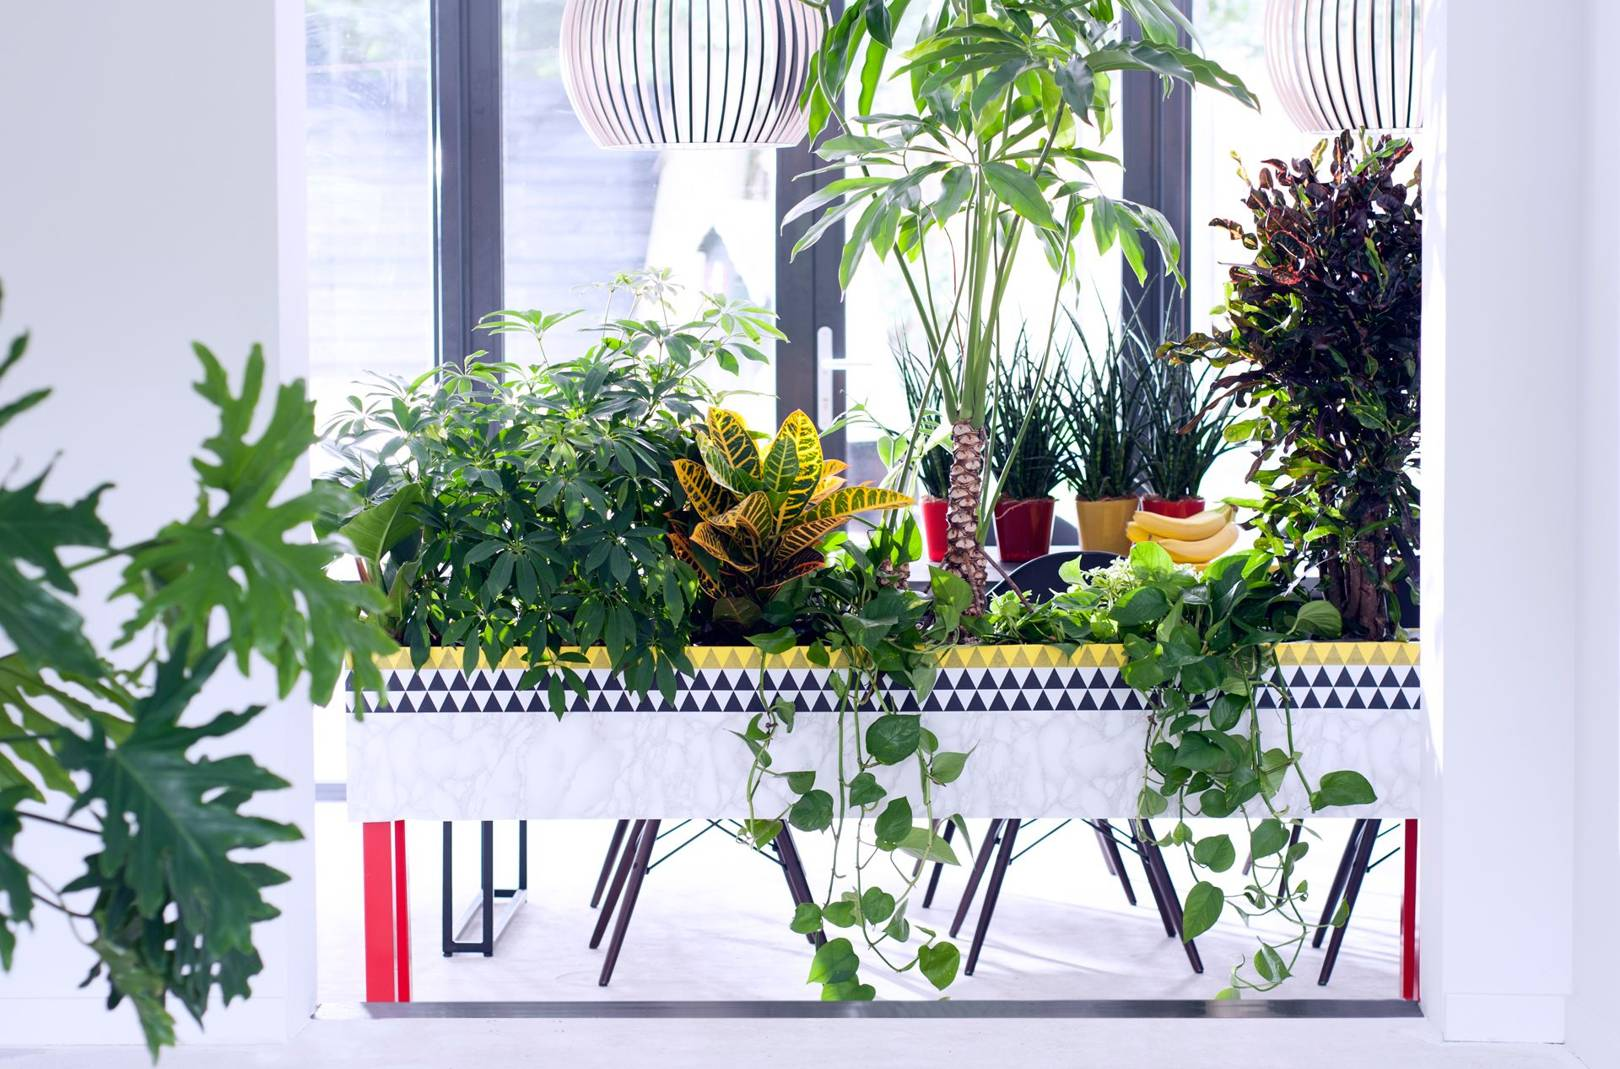 10 cool house plants to grow inside | British GQ